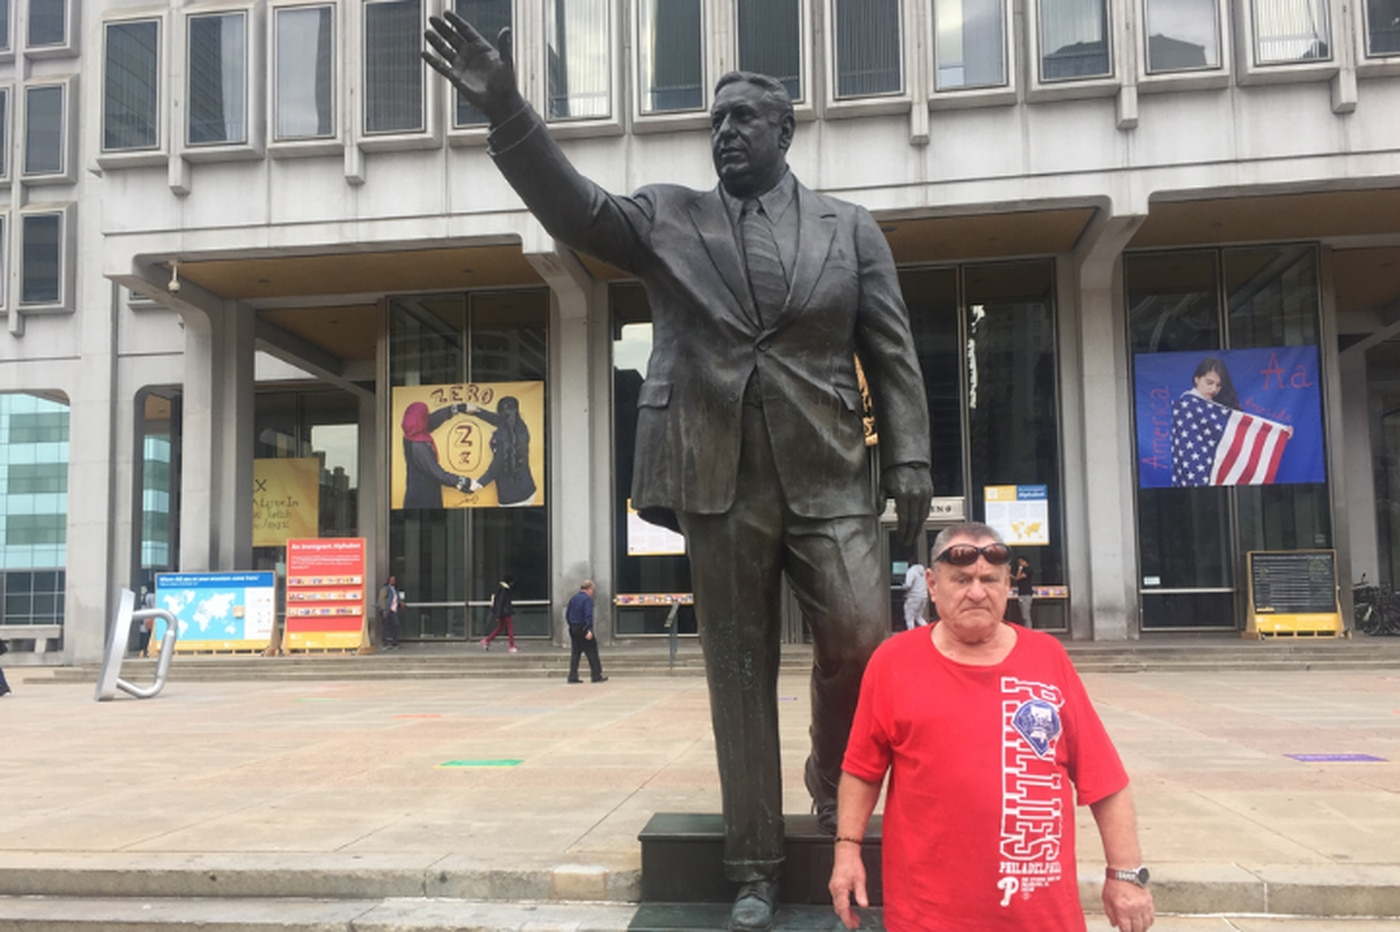 Rizzo statue's departure stirs old fears, new sorrows